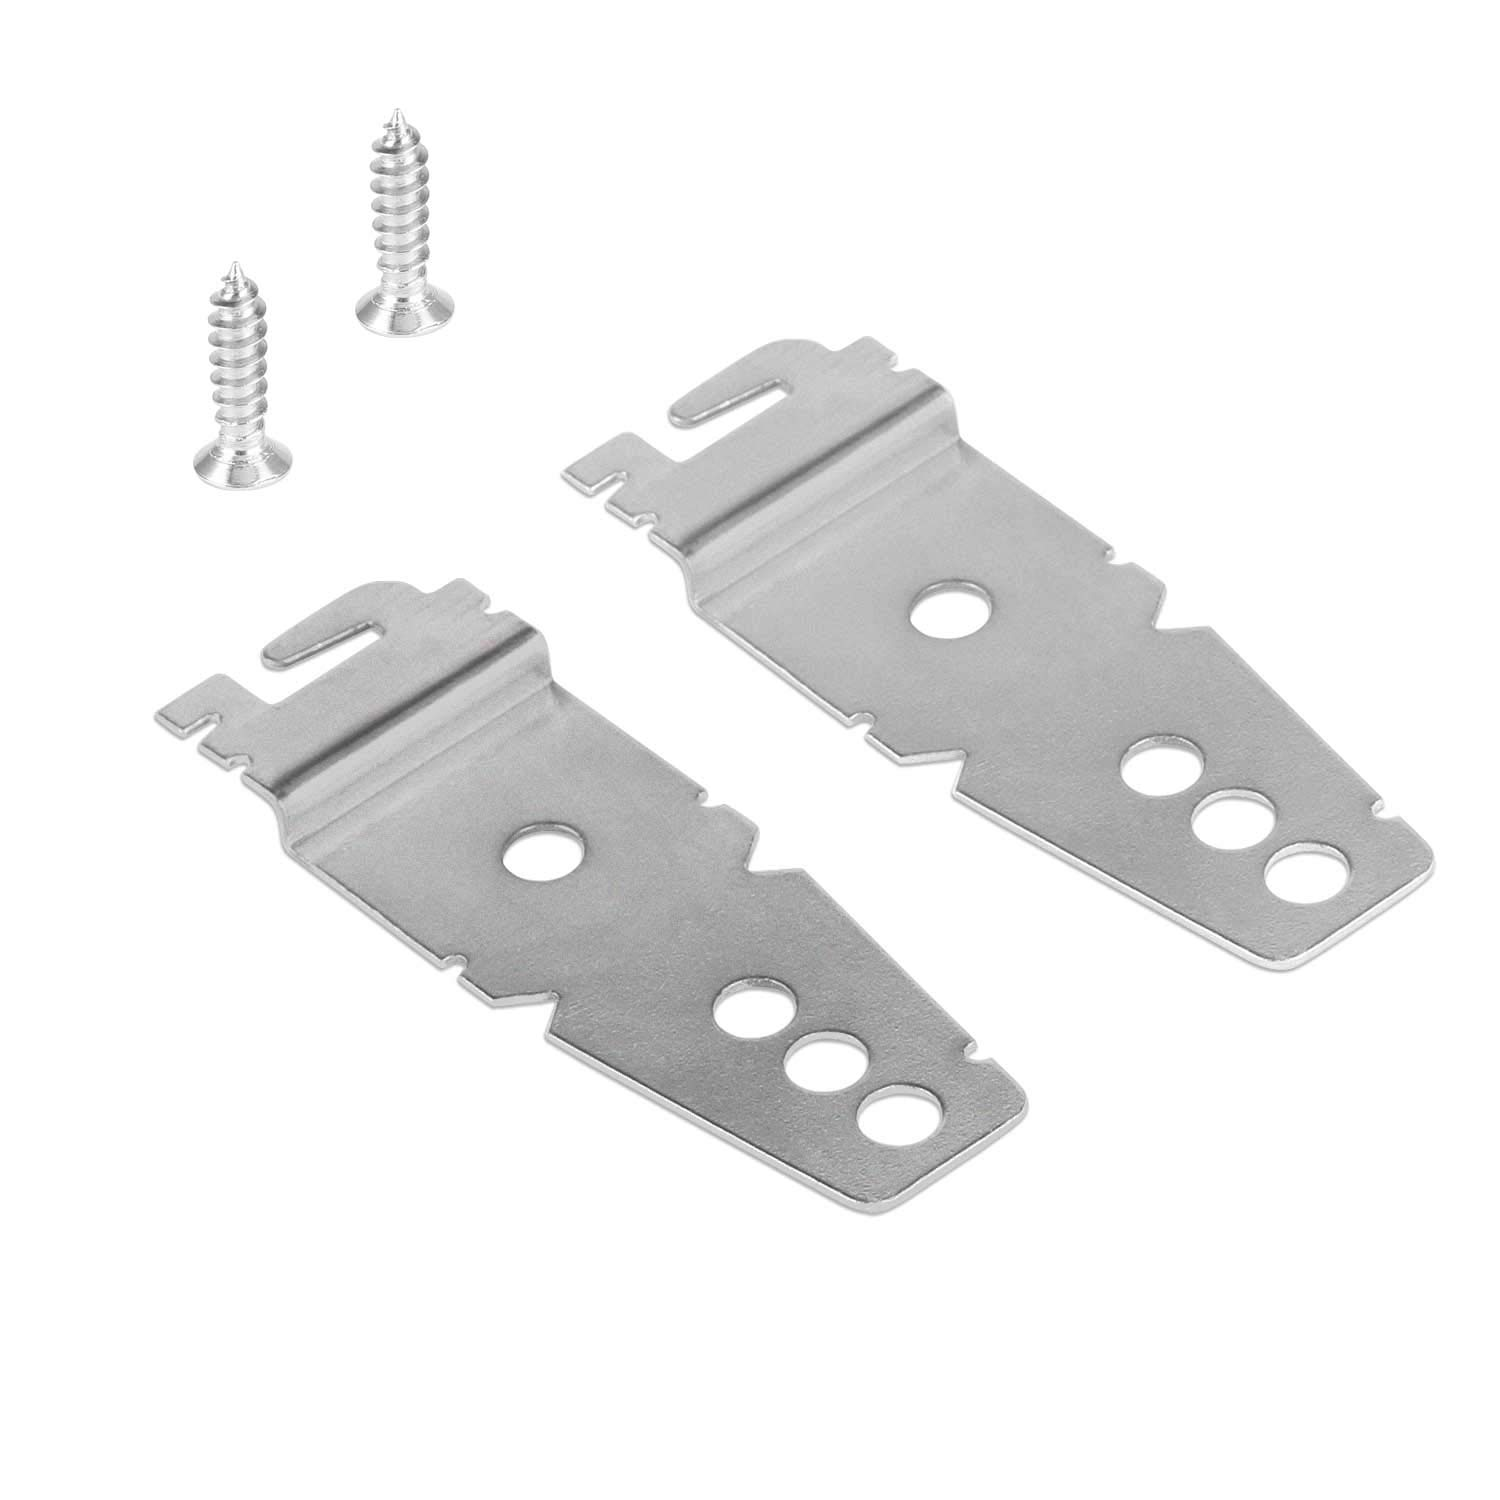 Dishwasher Mounting Bracket Whirlpool Kit 2 Pack + 2 Mounting Screws - Undercounter Dishwasher Brackets Compatible with Whirlpool/Kenmore / Kitchenaid/Maytag / Amana